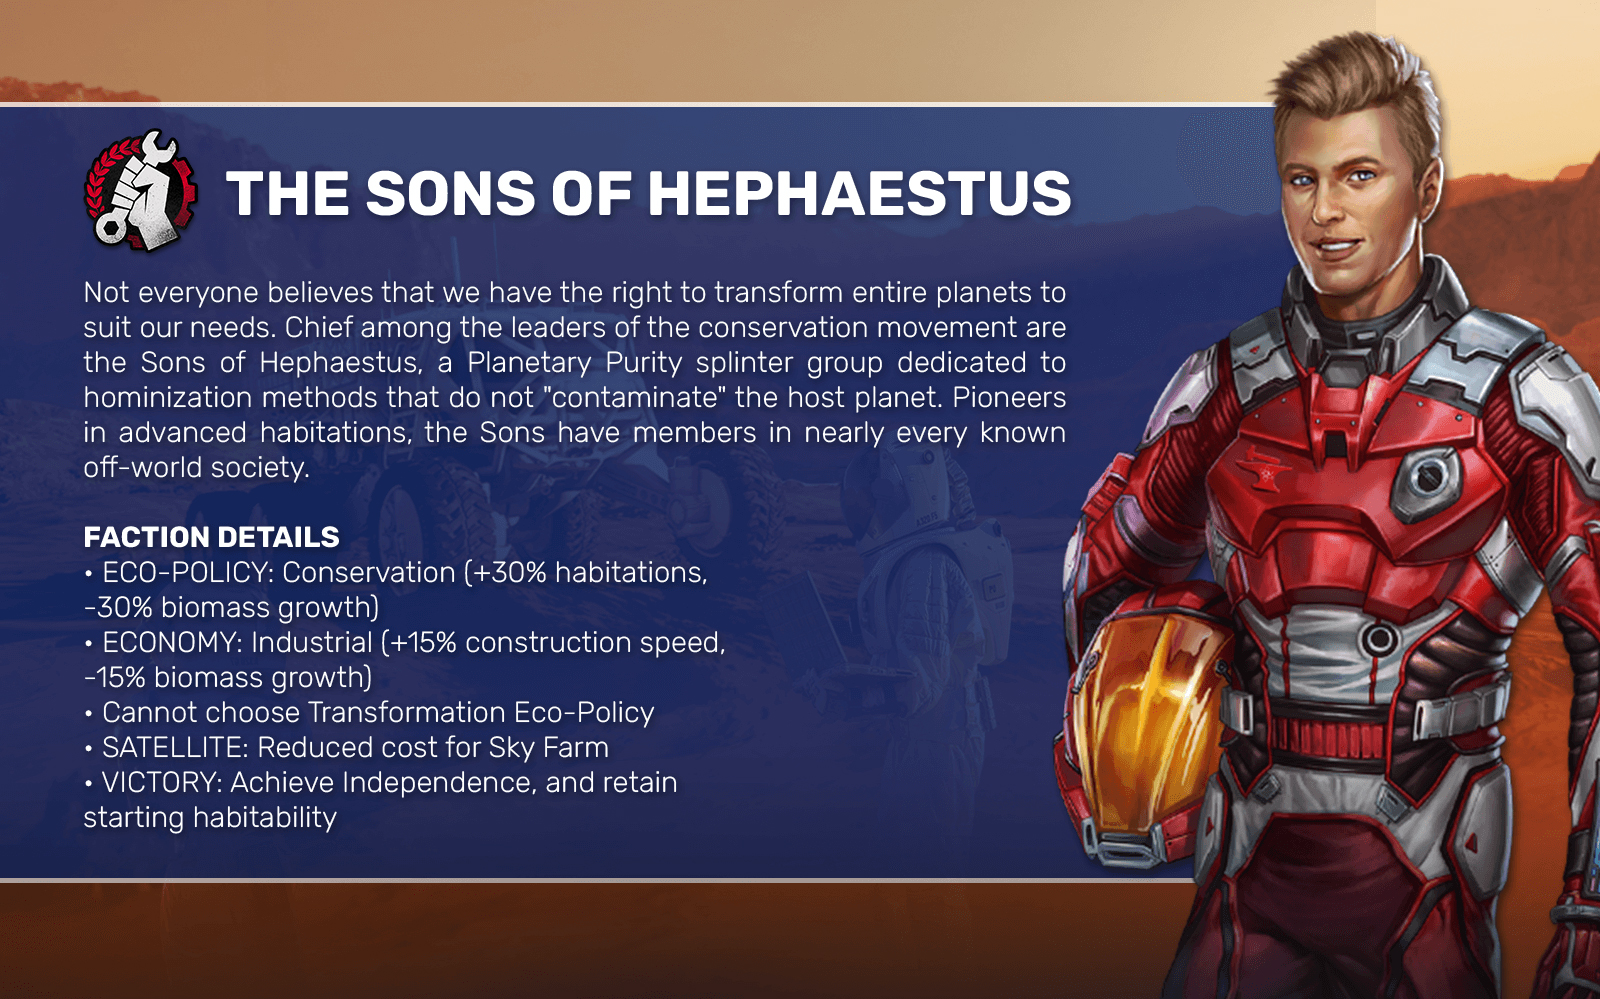 THE SONS OF HEPHAESTUS